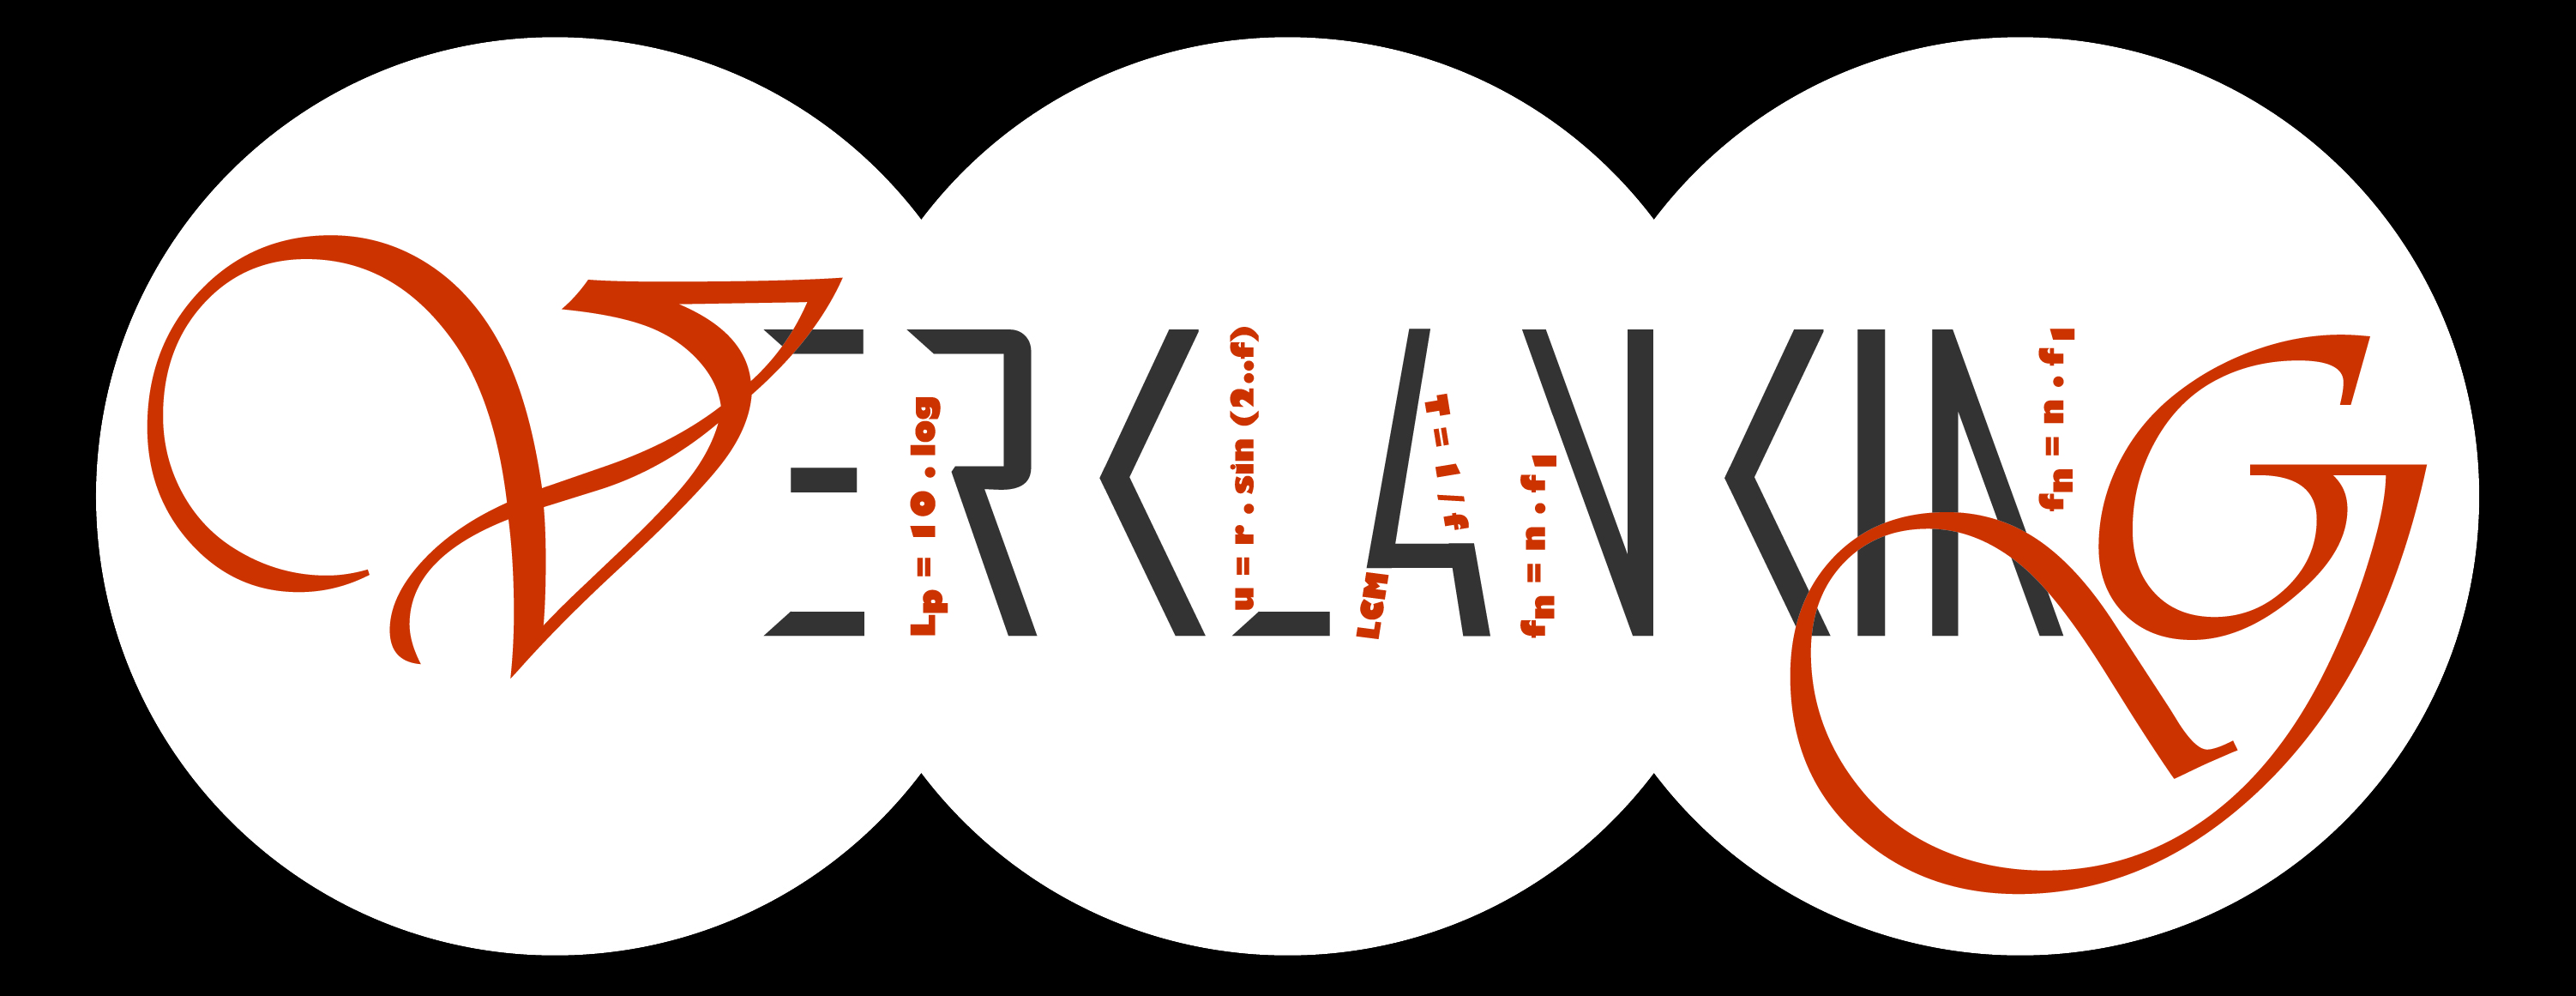 Verklanking_website_2